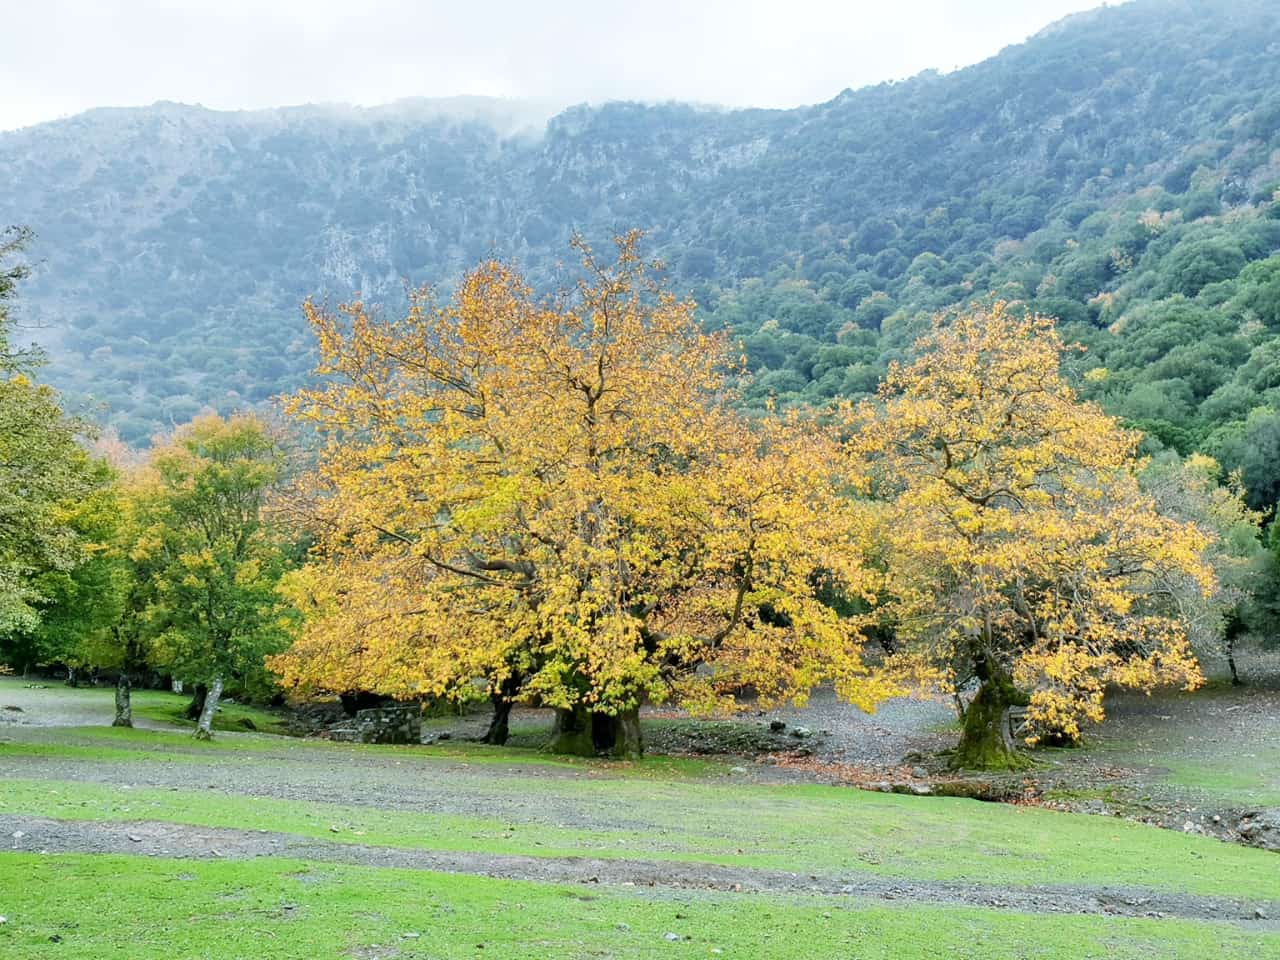 Eleonas Country Hotel Village, eleonas traditional hotel, eleonas traditional cottages, six days hiking eleonas, wild flowers, ancient olive trees and groves, small rivers, monasteries, gorges, secret forests, hidden villages, and old pathways, votomos lake